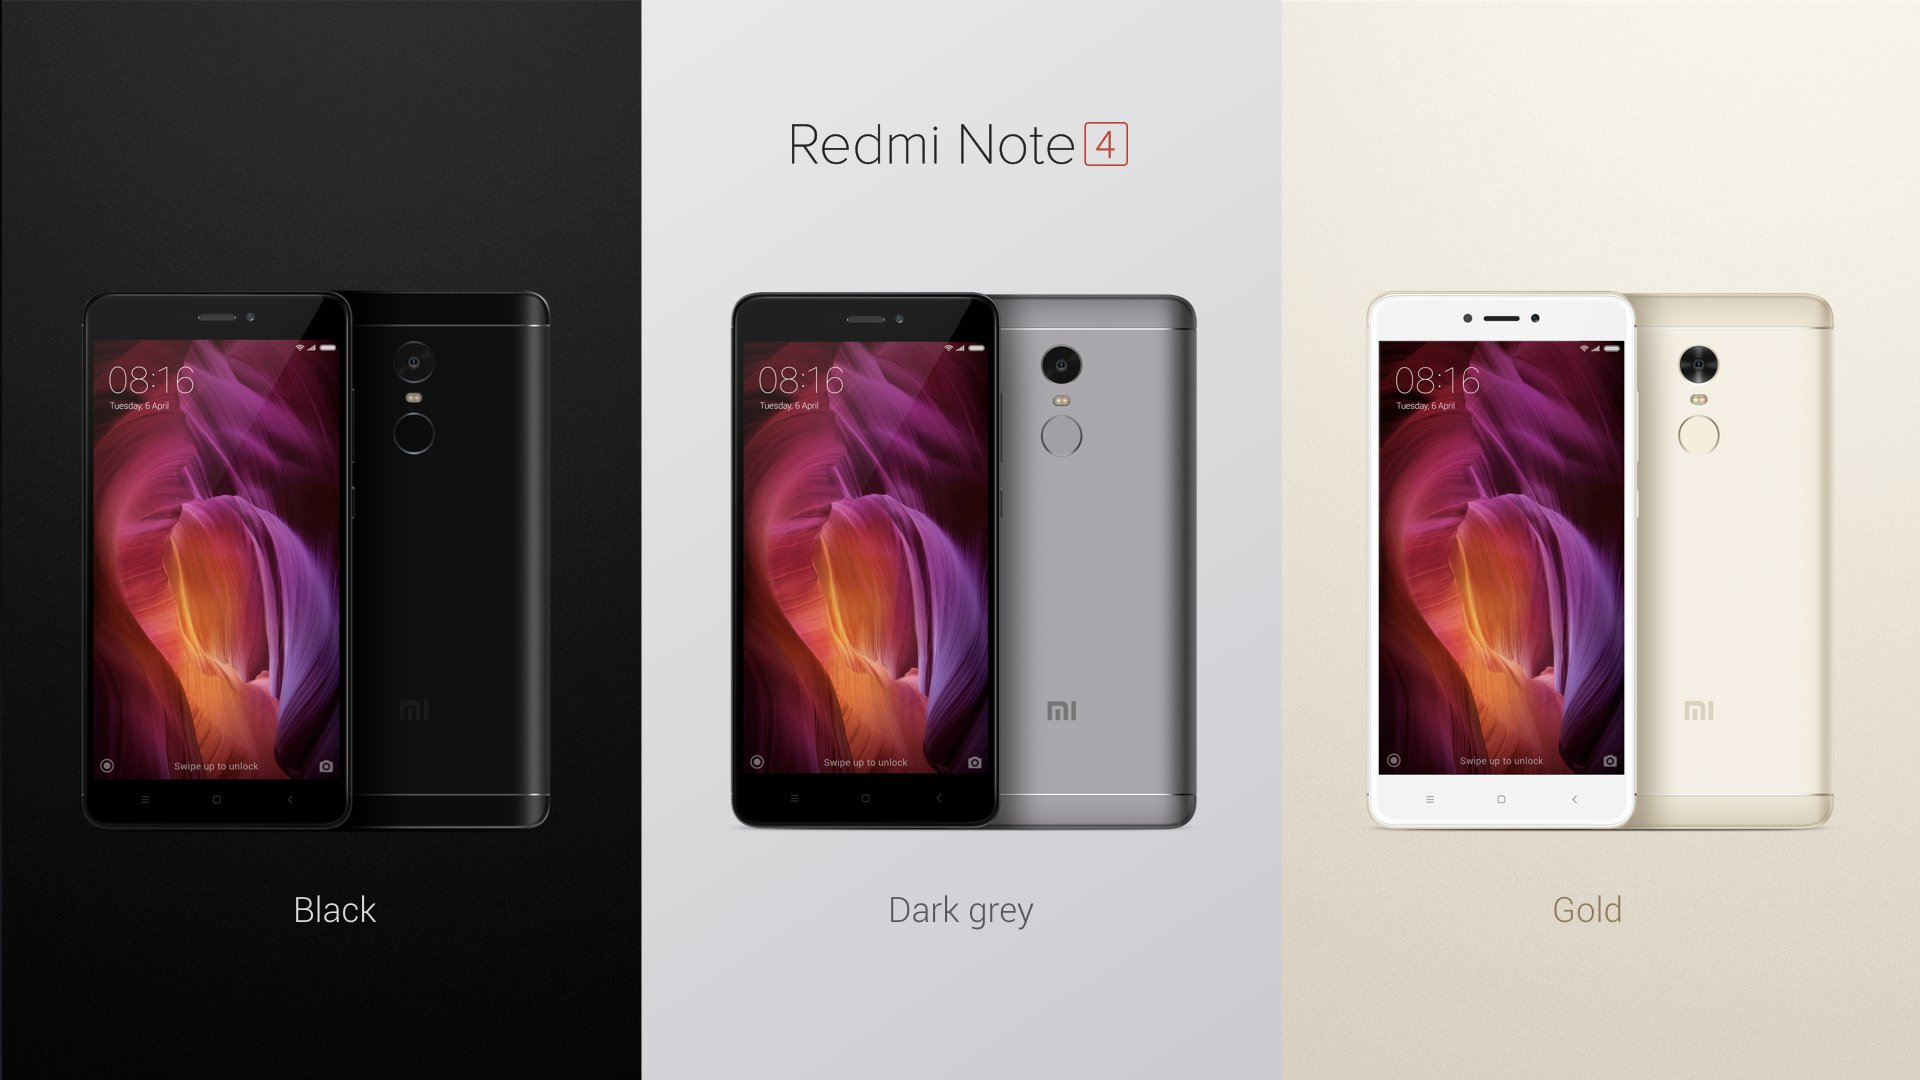 redmi note 4 launched in india with snapdragon 625 processor